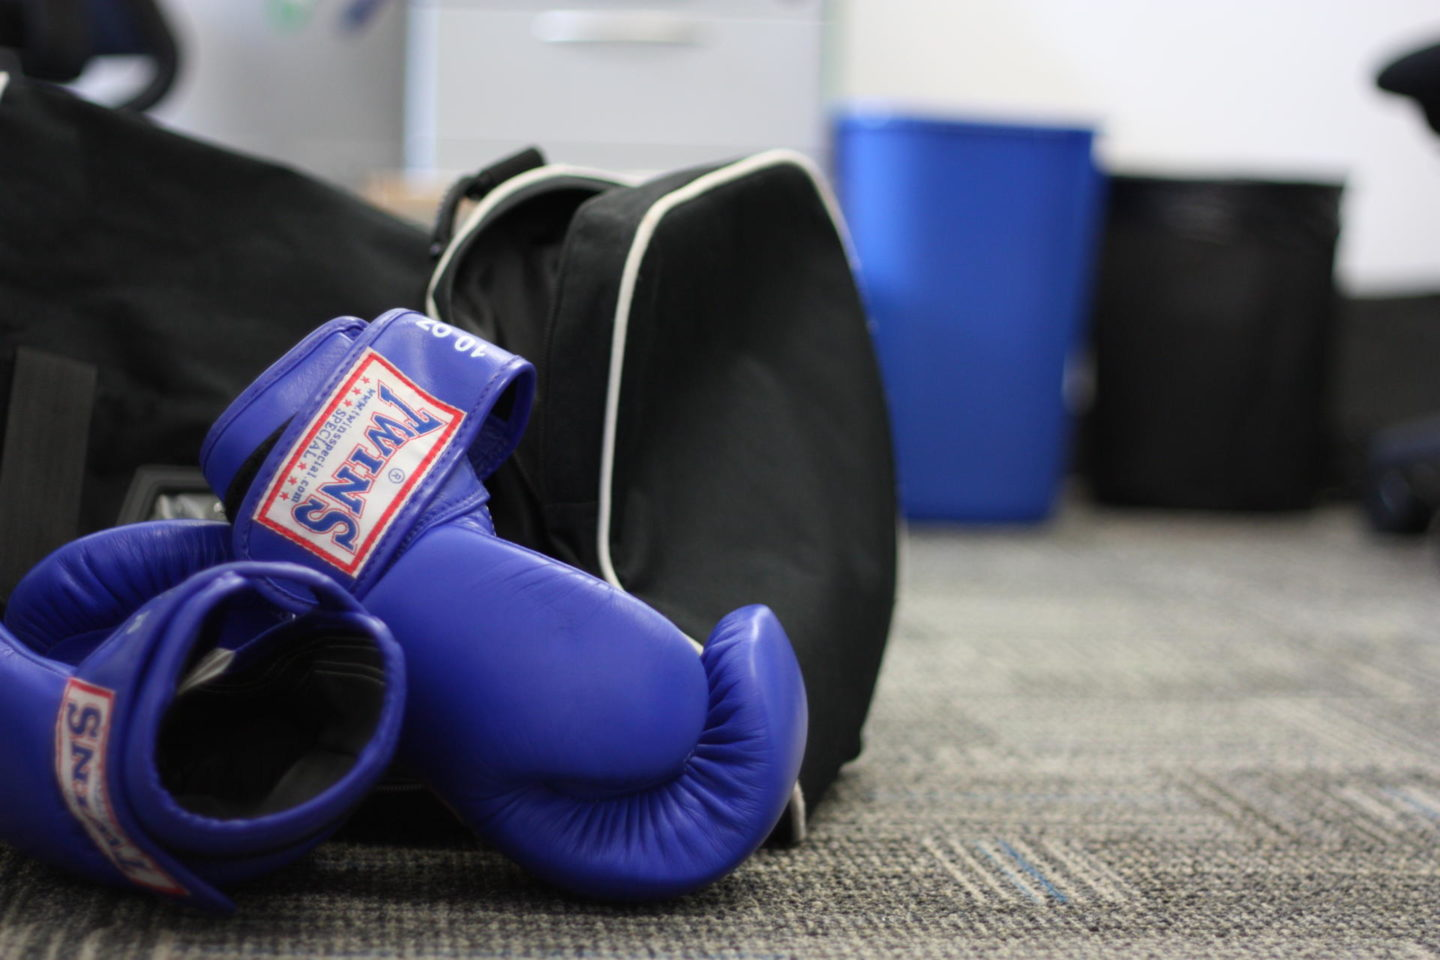 DOES BOXING HAVE TO BE SO TOUGH?